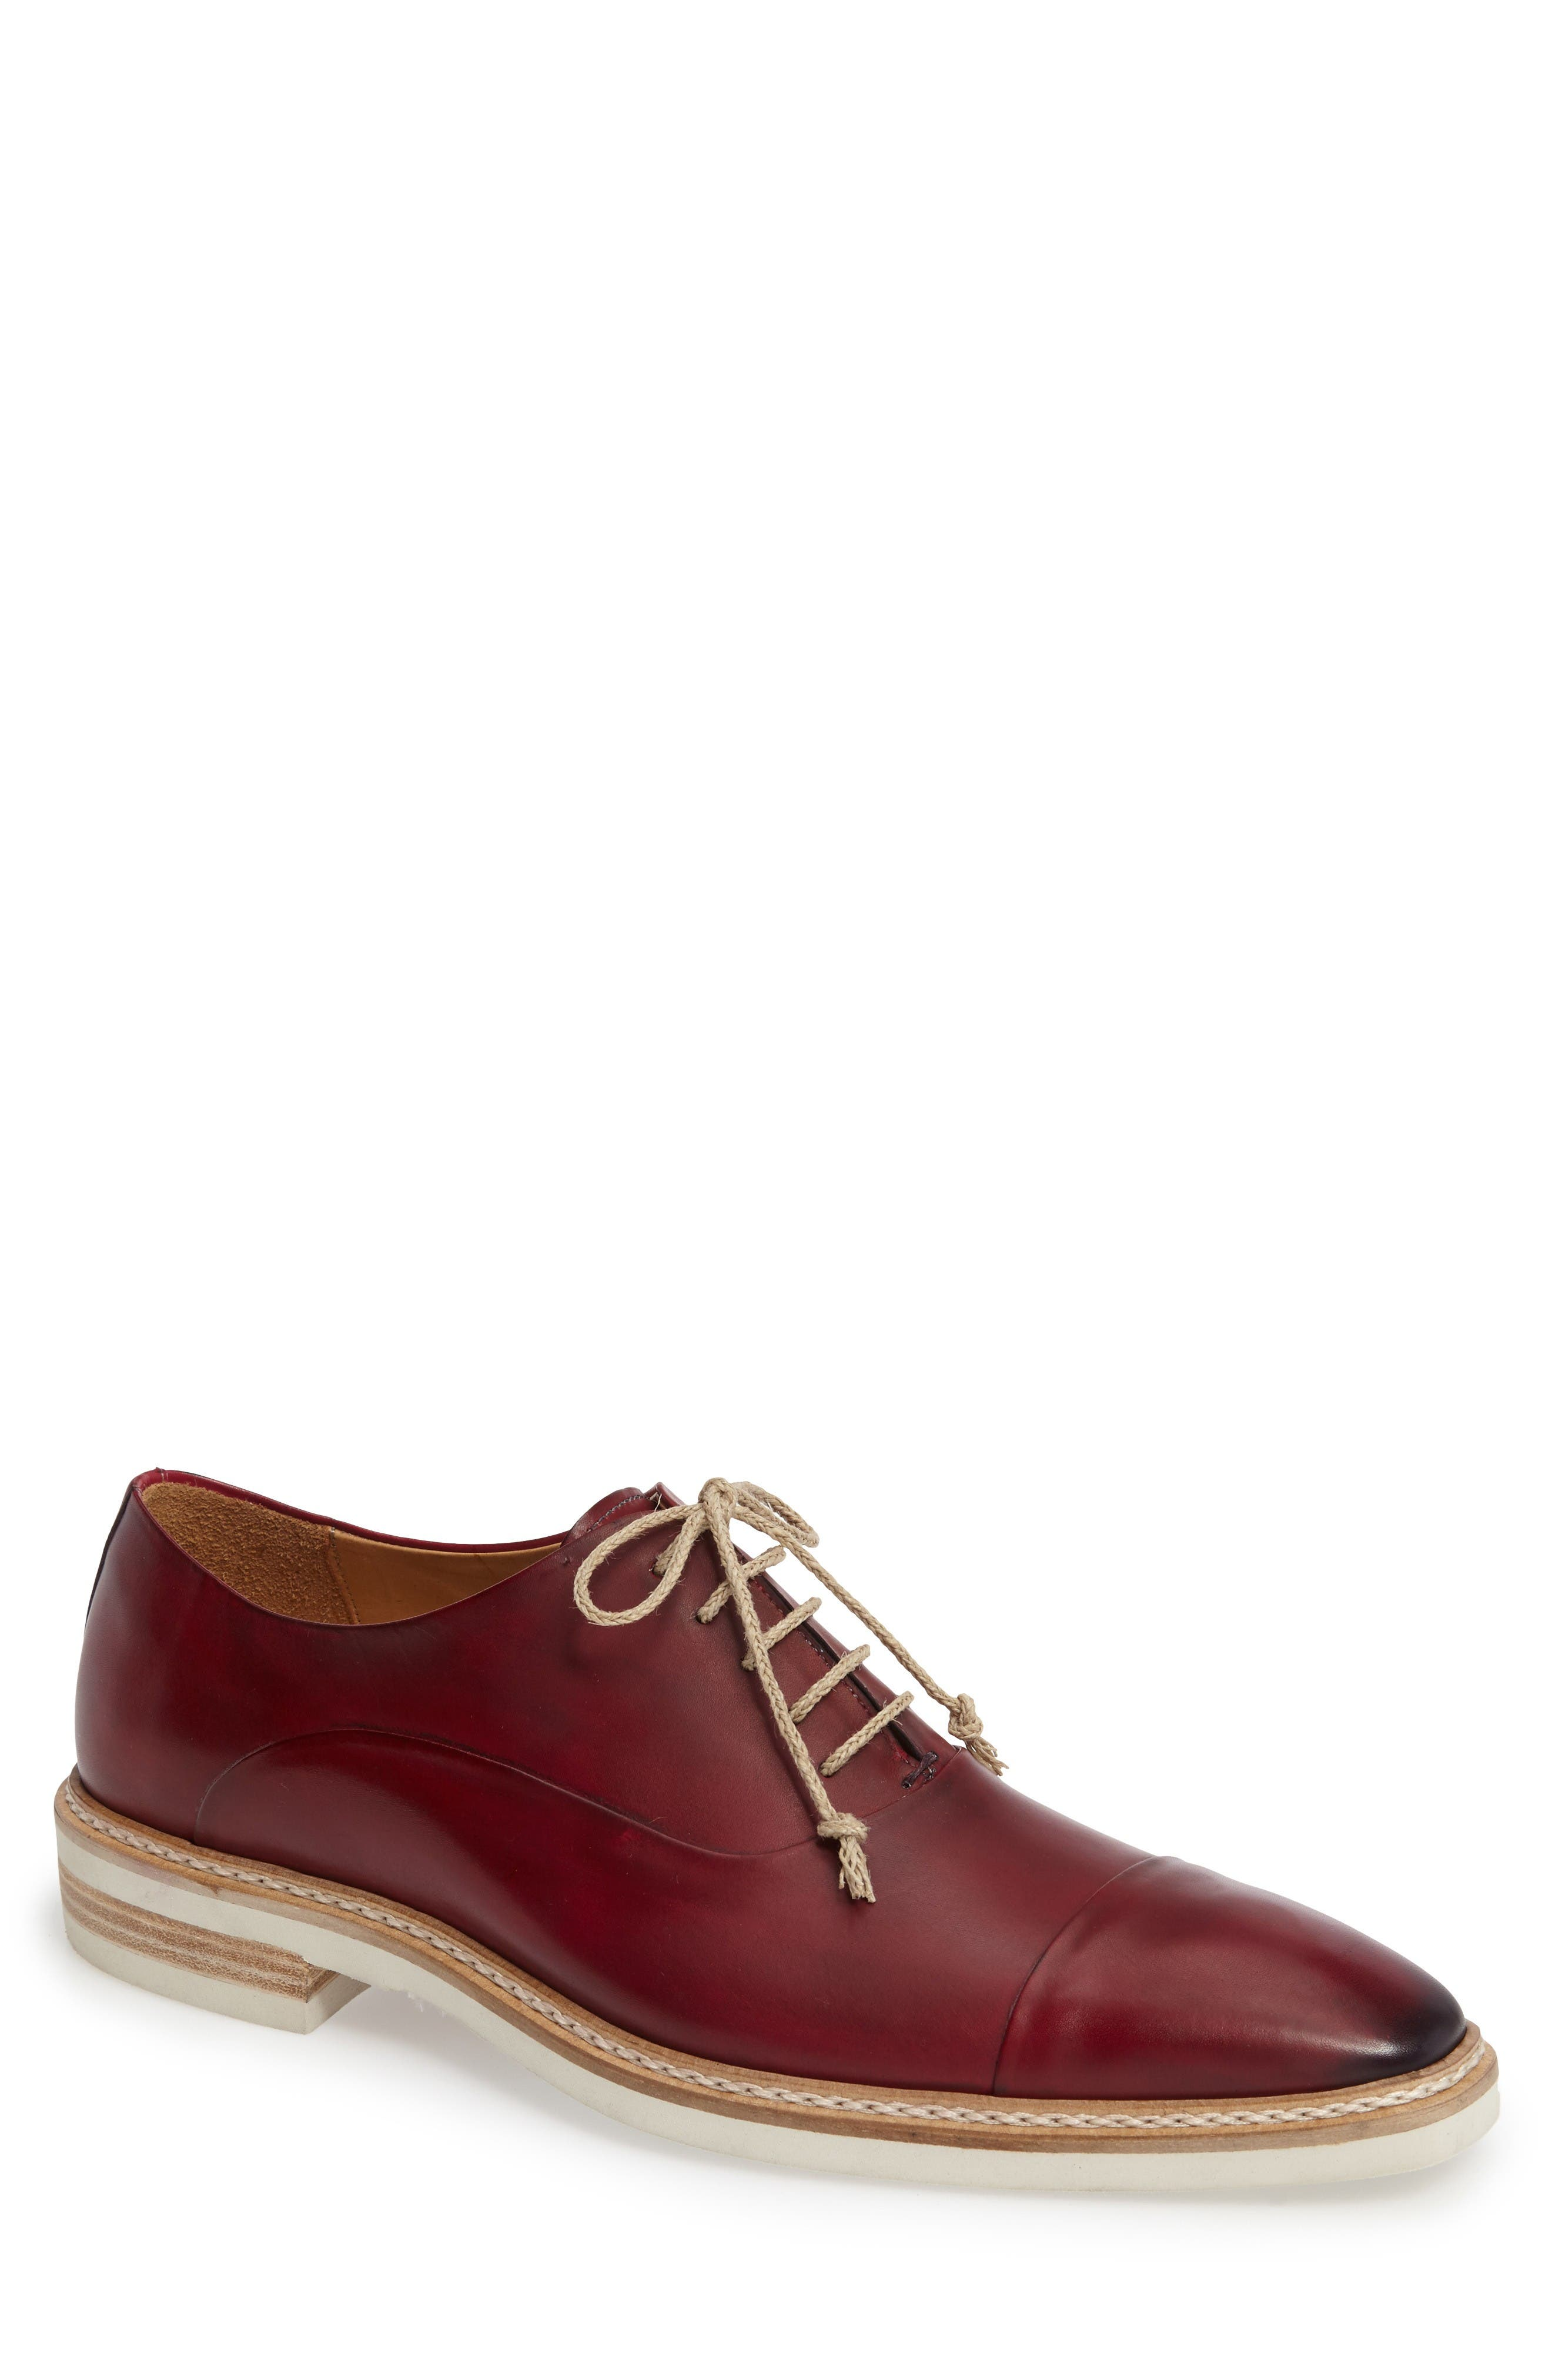 Curie Cap Toe Oxford,                         Main,                         color, Burgundy Leather